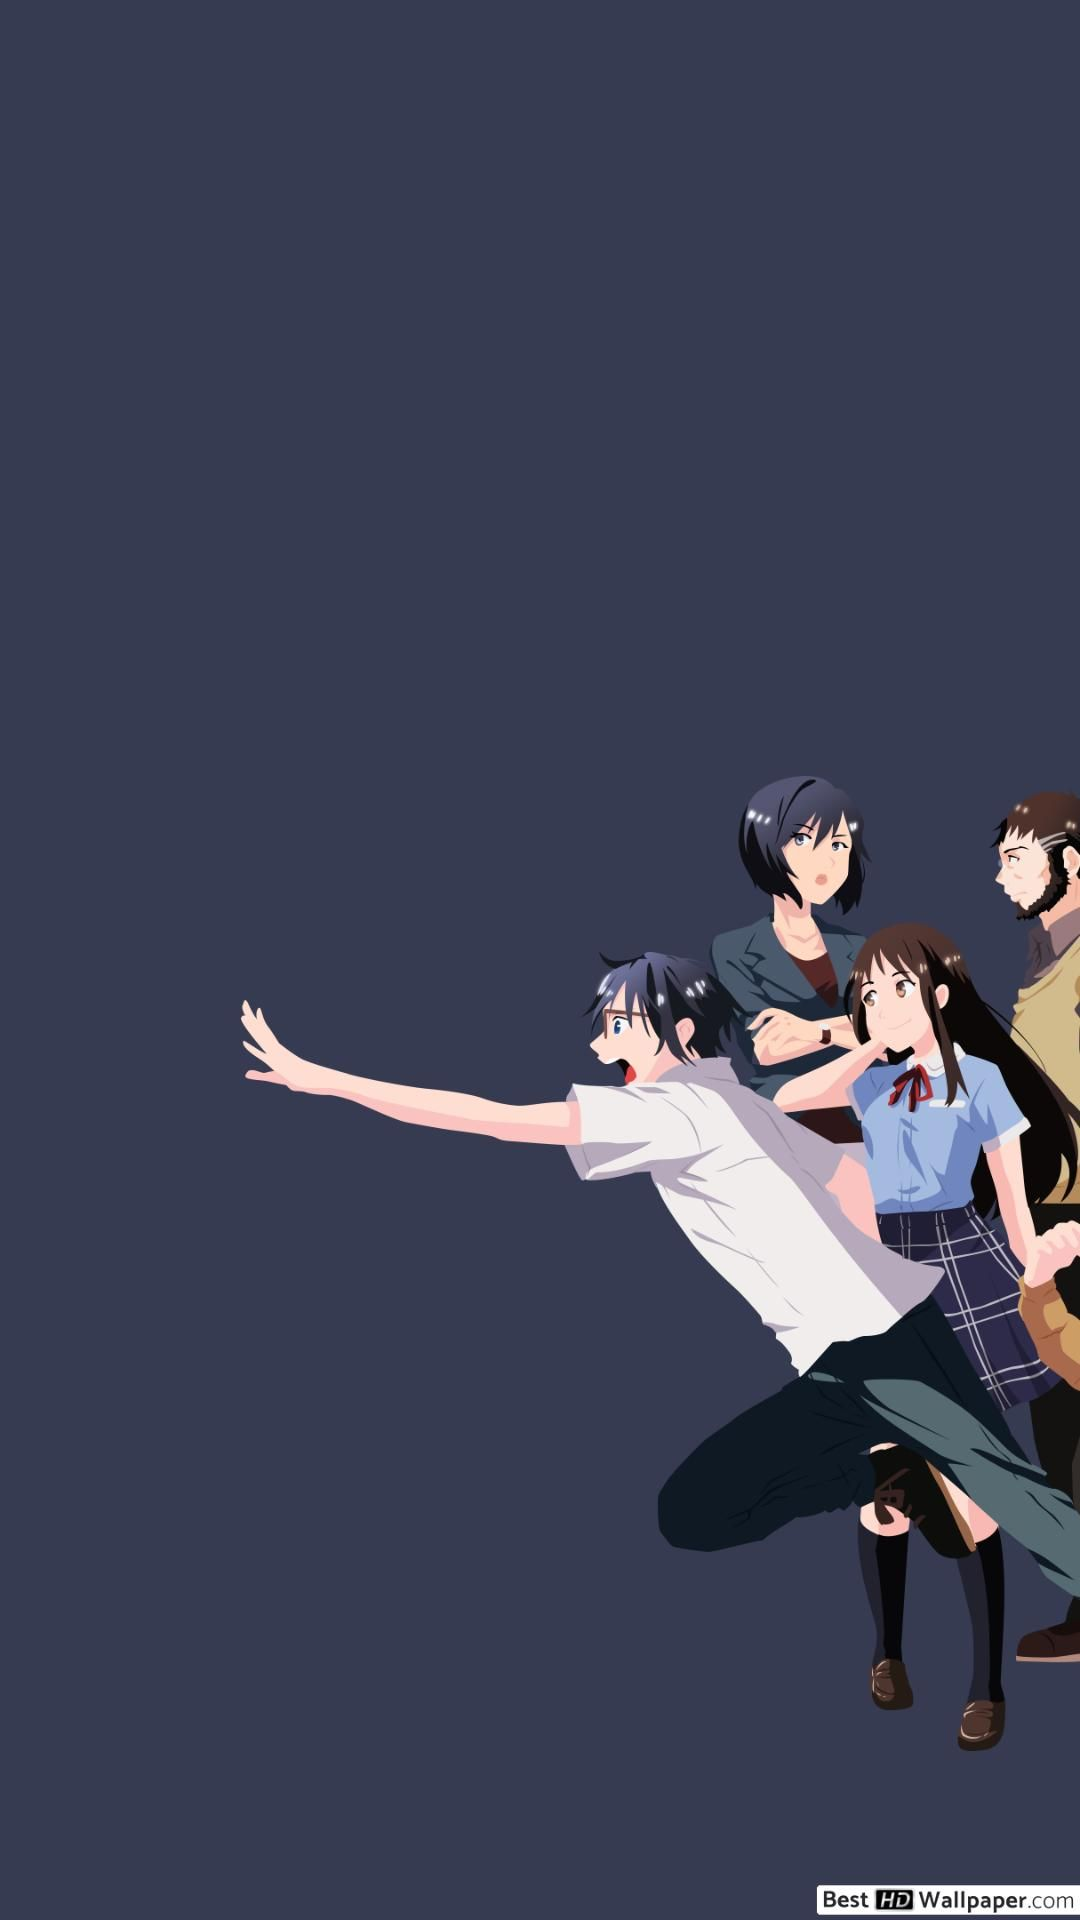 Erased Anime Wallpapers - Wallpaper Cave